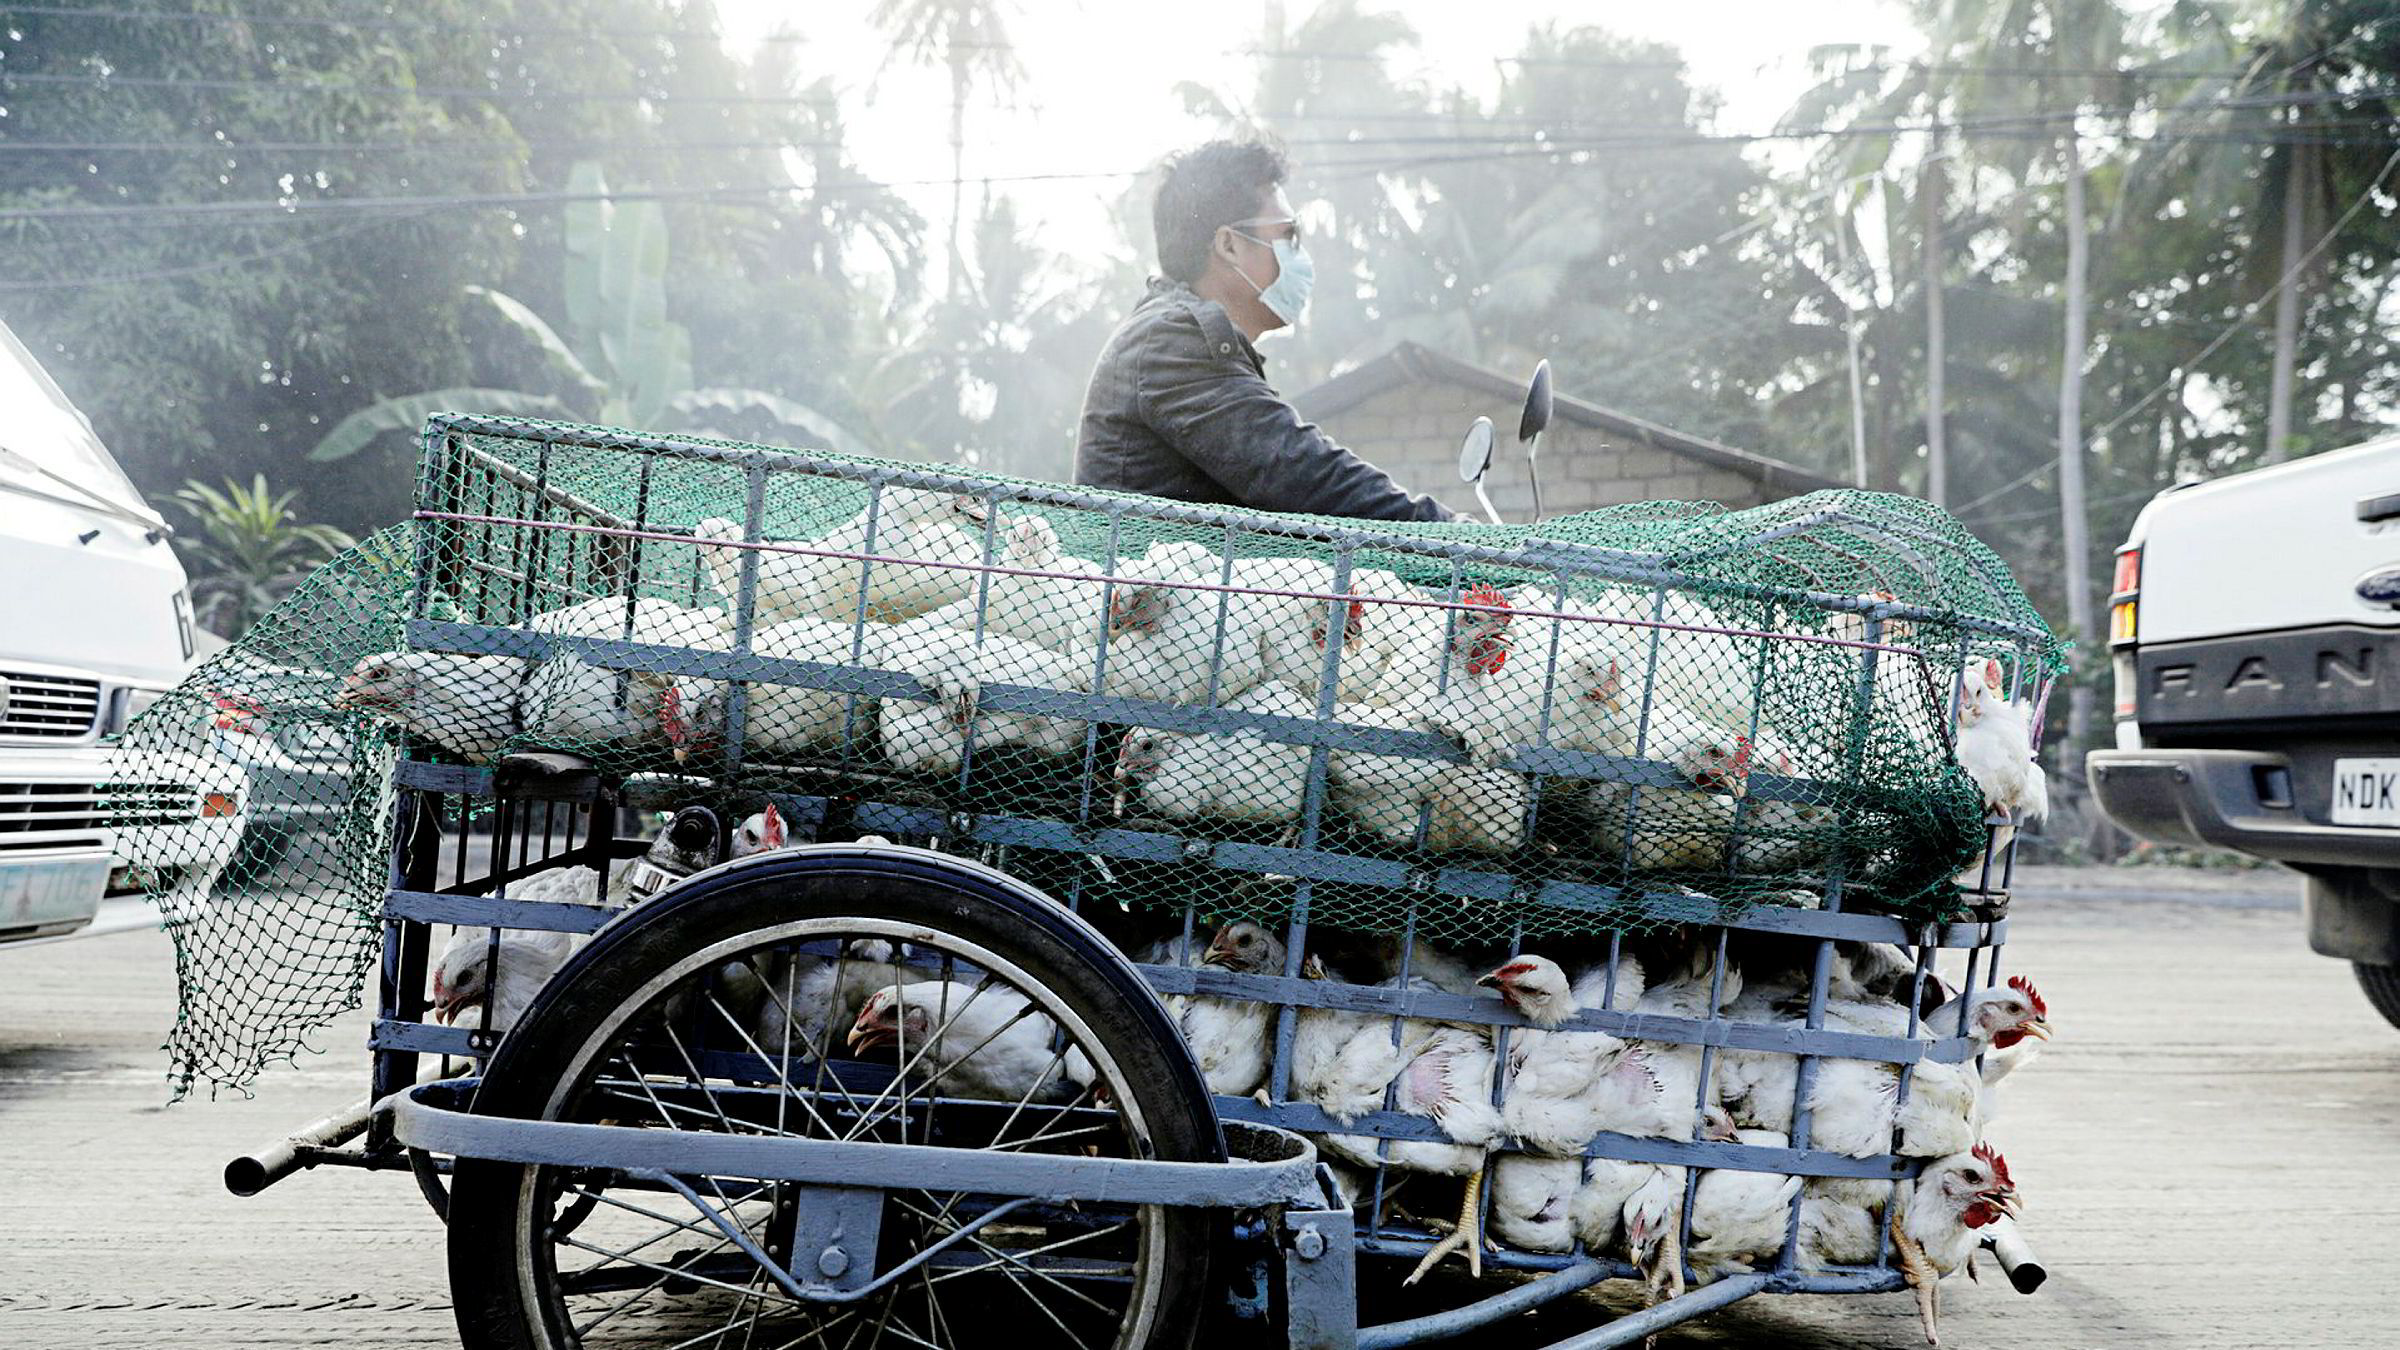 Bildetekst til selve bildet. Dozens of chickens are hauled in a rickshaw as residents affected by the erupting Taal Volcano are temporarily allowed to collect belongings and abandoned animals from their homes in Agoncillo, Batangas.